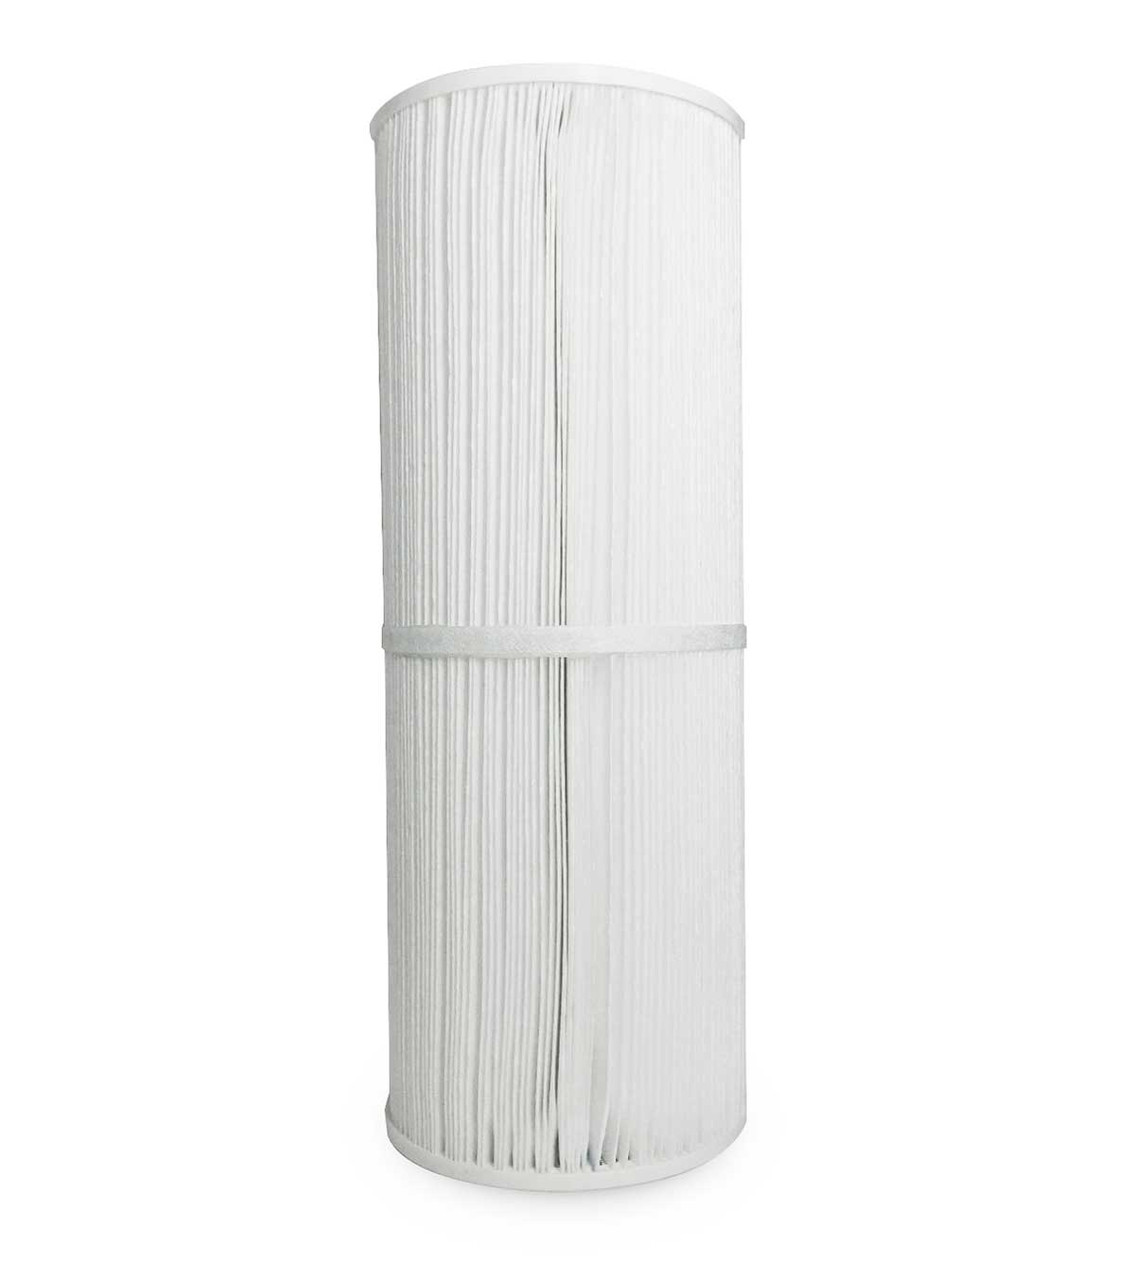 """Replacement 5 Micron Commercial Pre-Filter Cartridge - 5"""" x 13"""" (40 sq ft) for Aquamiser+, Max-Q+"""